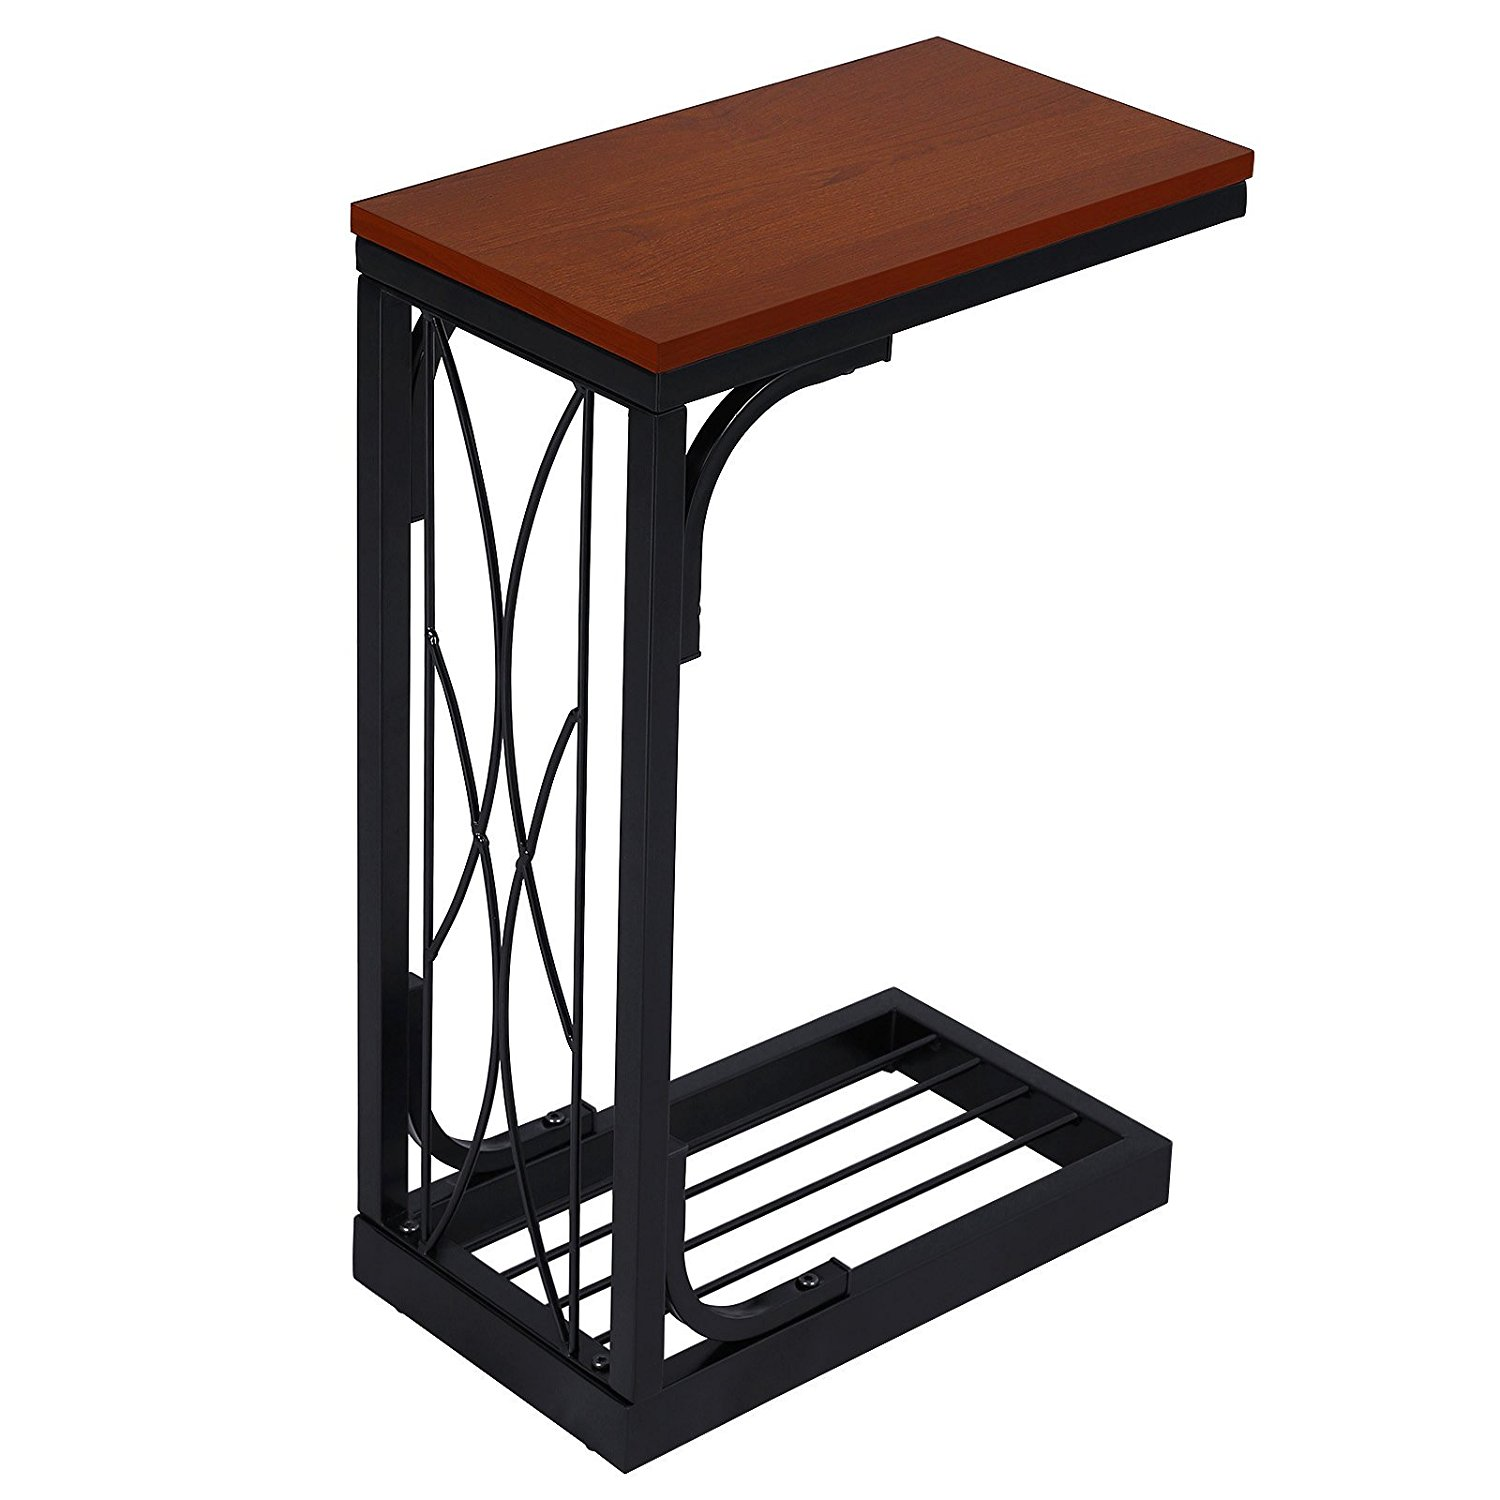 SONGMICS Snack Table Heavy-Duty Sofa Bed Side End Table W' Brown Wood Top ULNT40Z